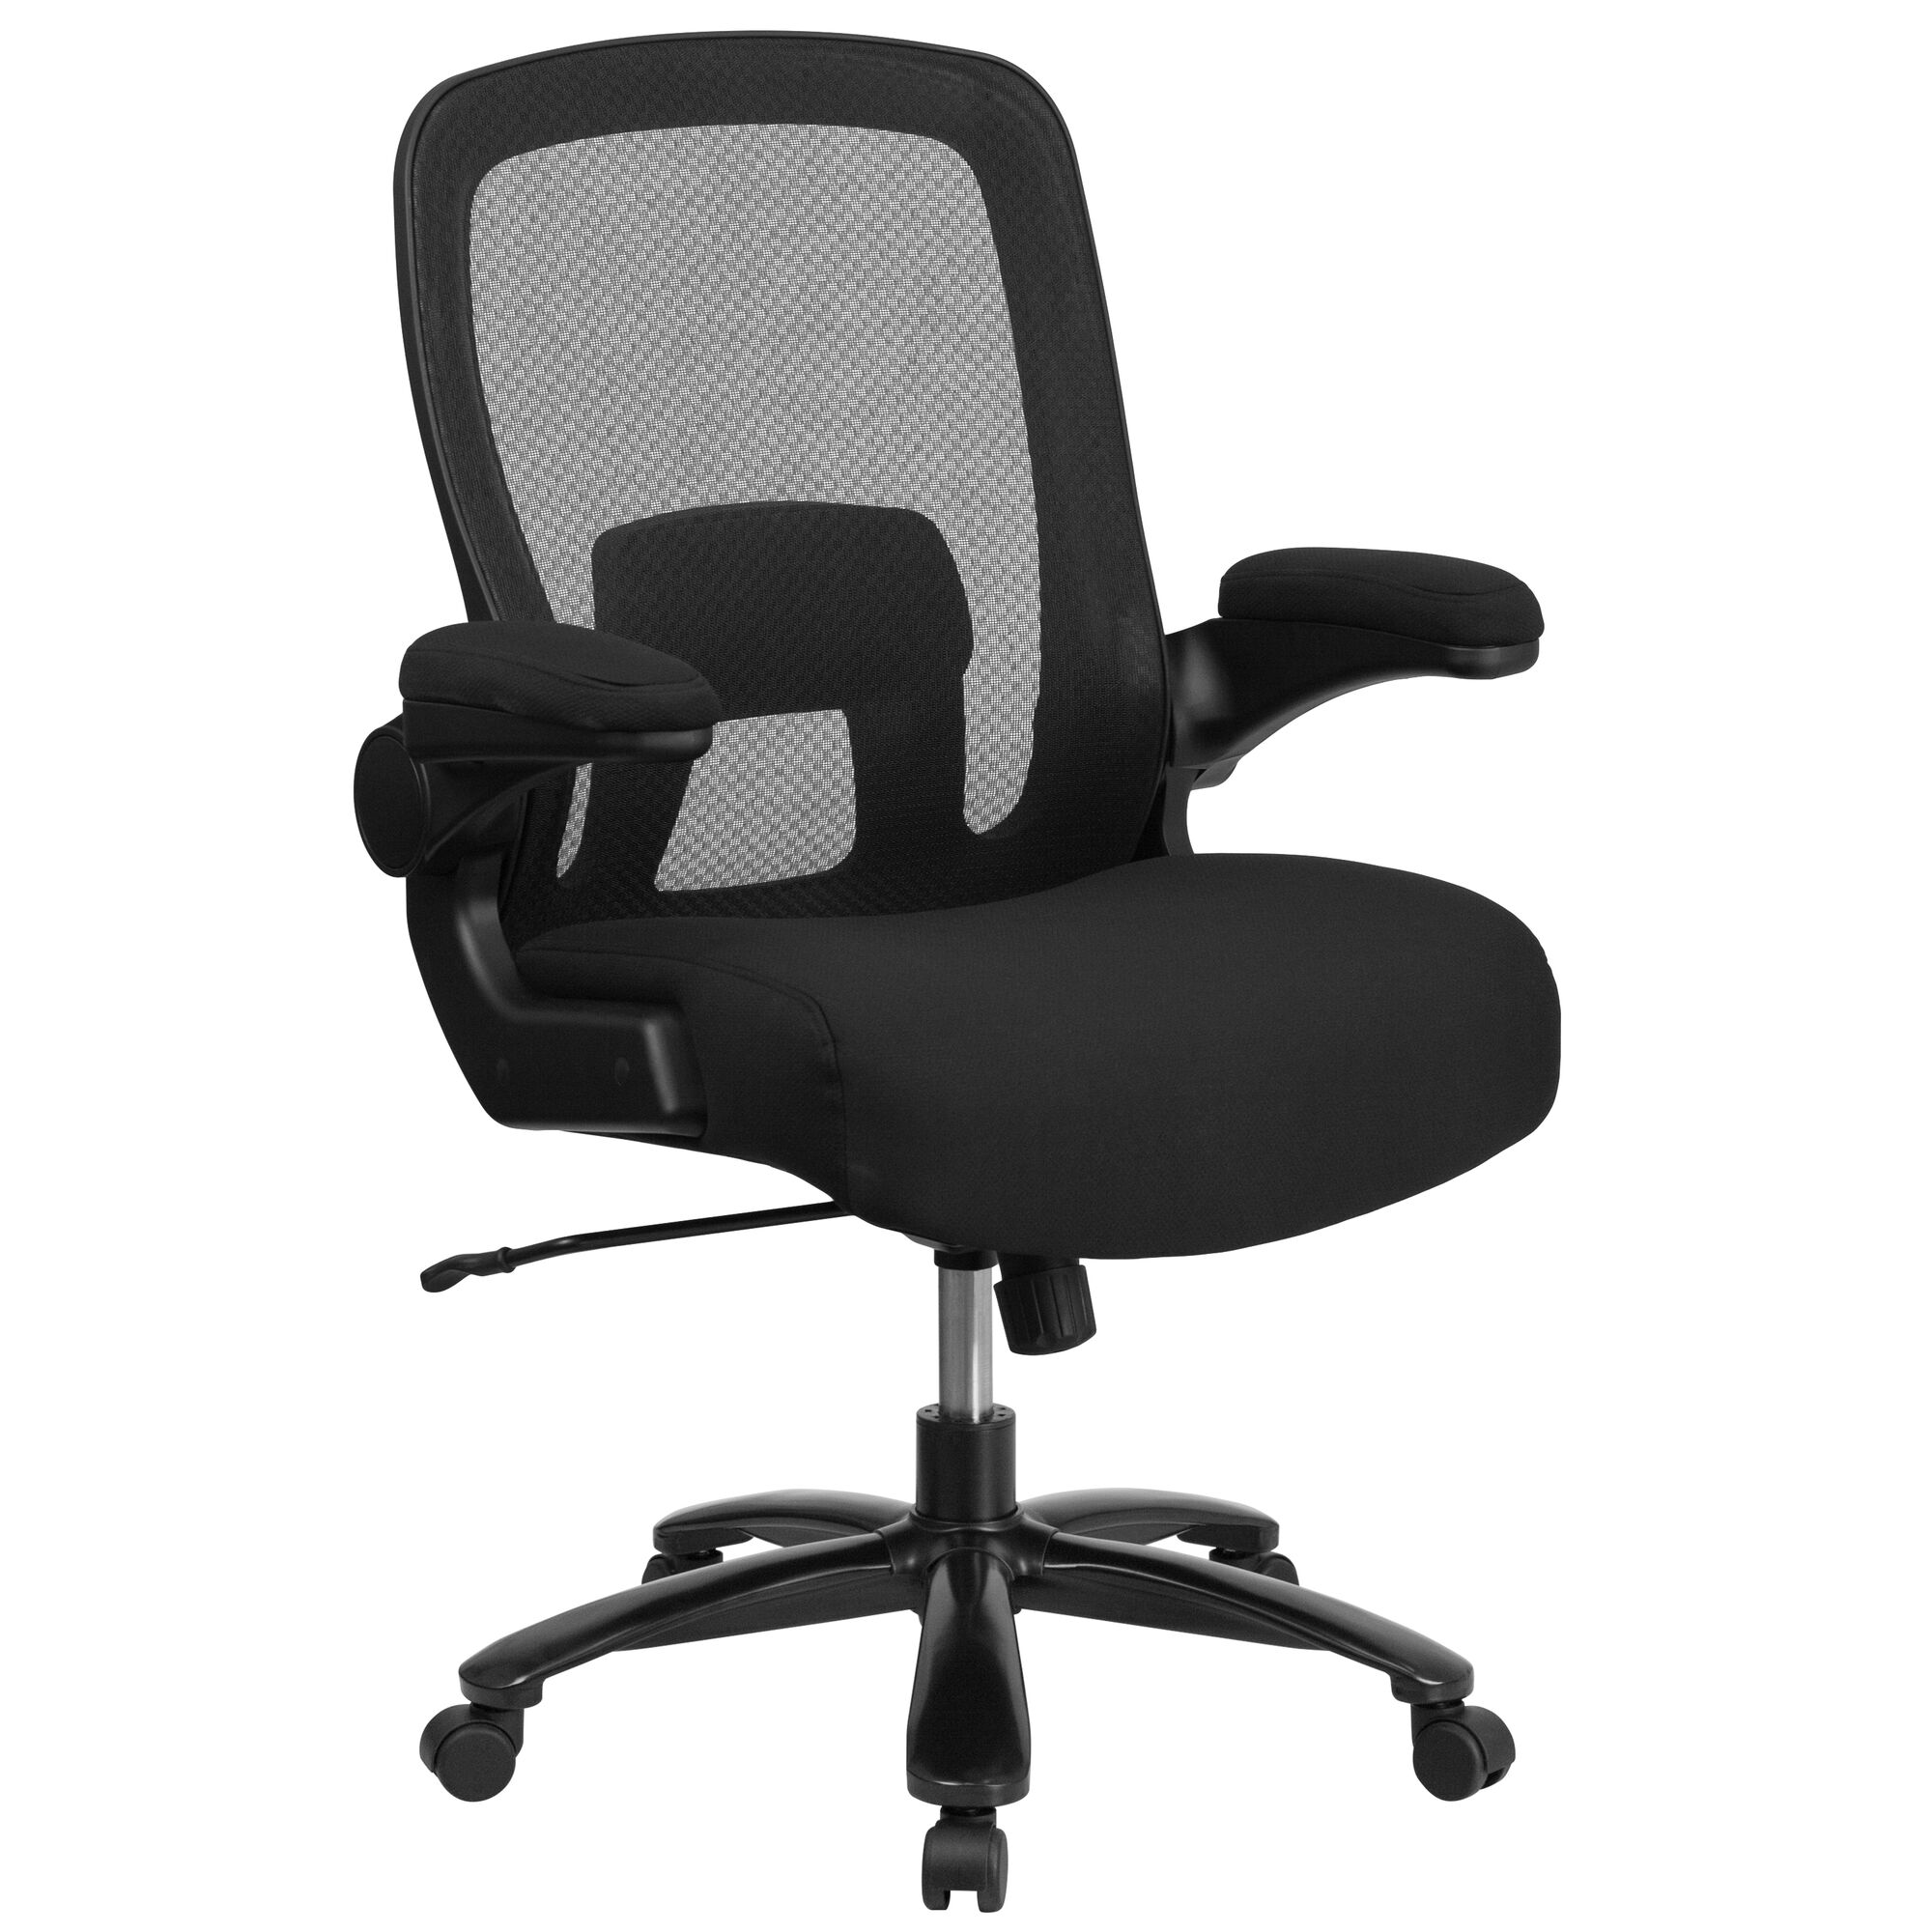 Superb Big Tall Office Chair Black Mesh Executive Swivel Office Chair With Lumbar And Back Support And Wheels Download Free Architecture Designs Viewormadebymaigaardcom